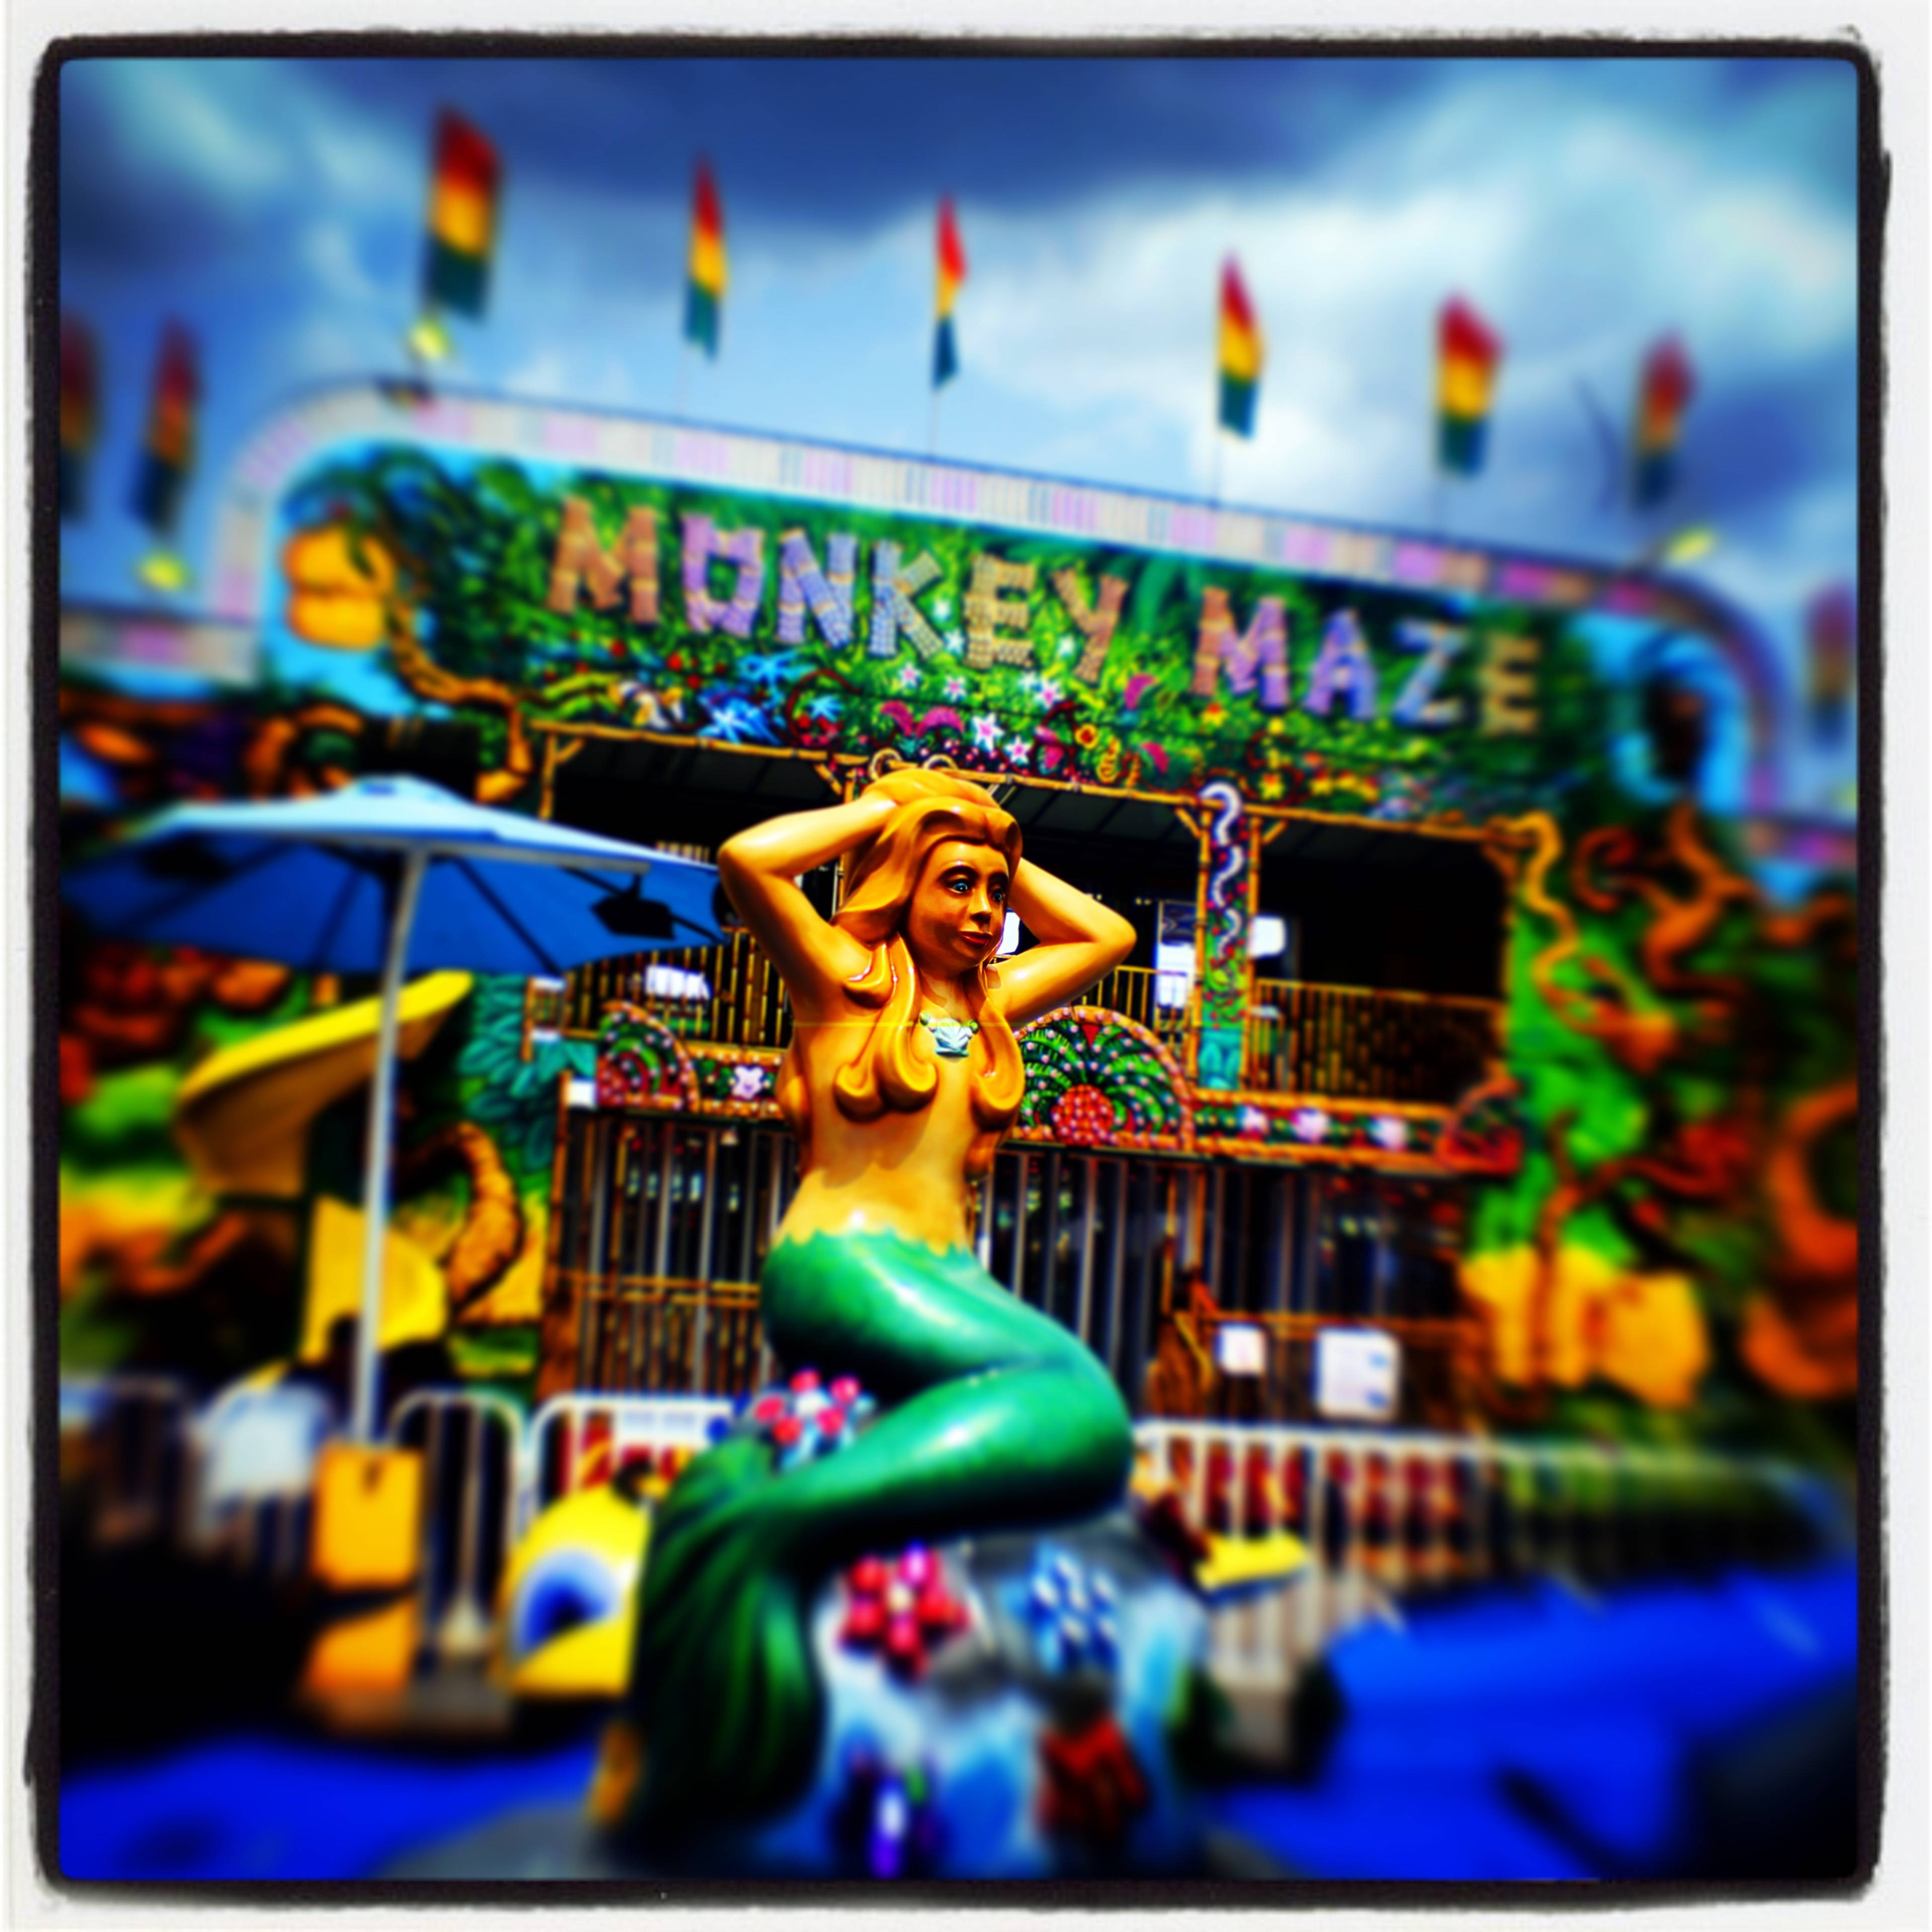 Brian Hill/bhill@dailyherald.com A mermaid and the Monkey Maze come together in a sea of colors at the Kane County Fair in St. Charles. @thebrianhill used a Lensbaby plastic tilt/shift lens with an old Sony wide angle video adapter lens to get the effect.